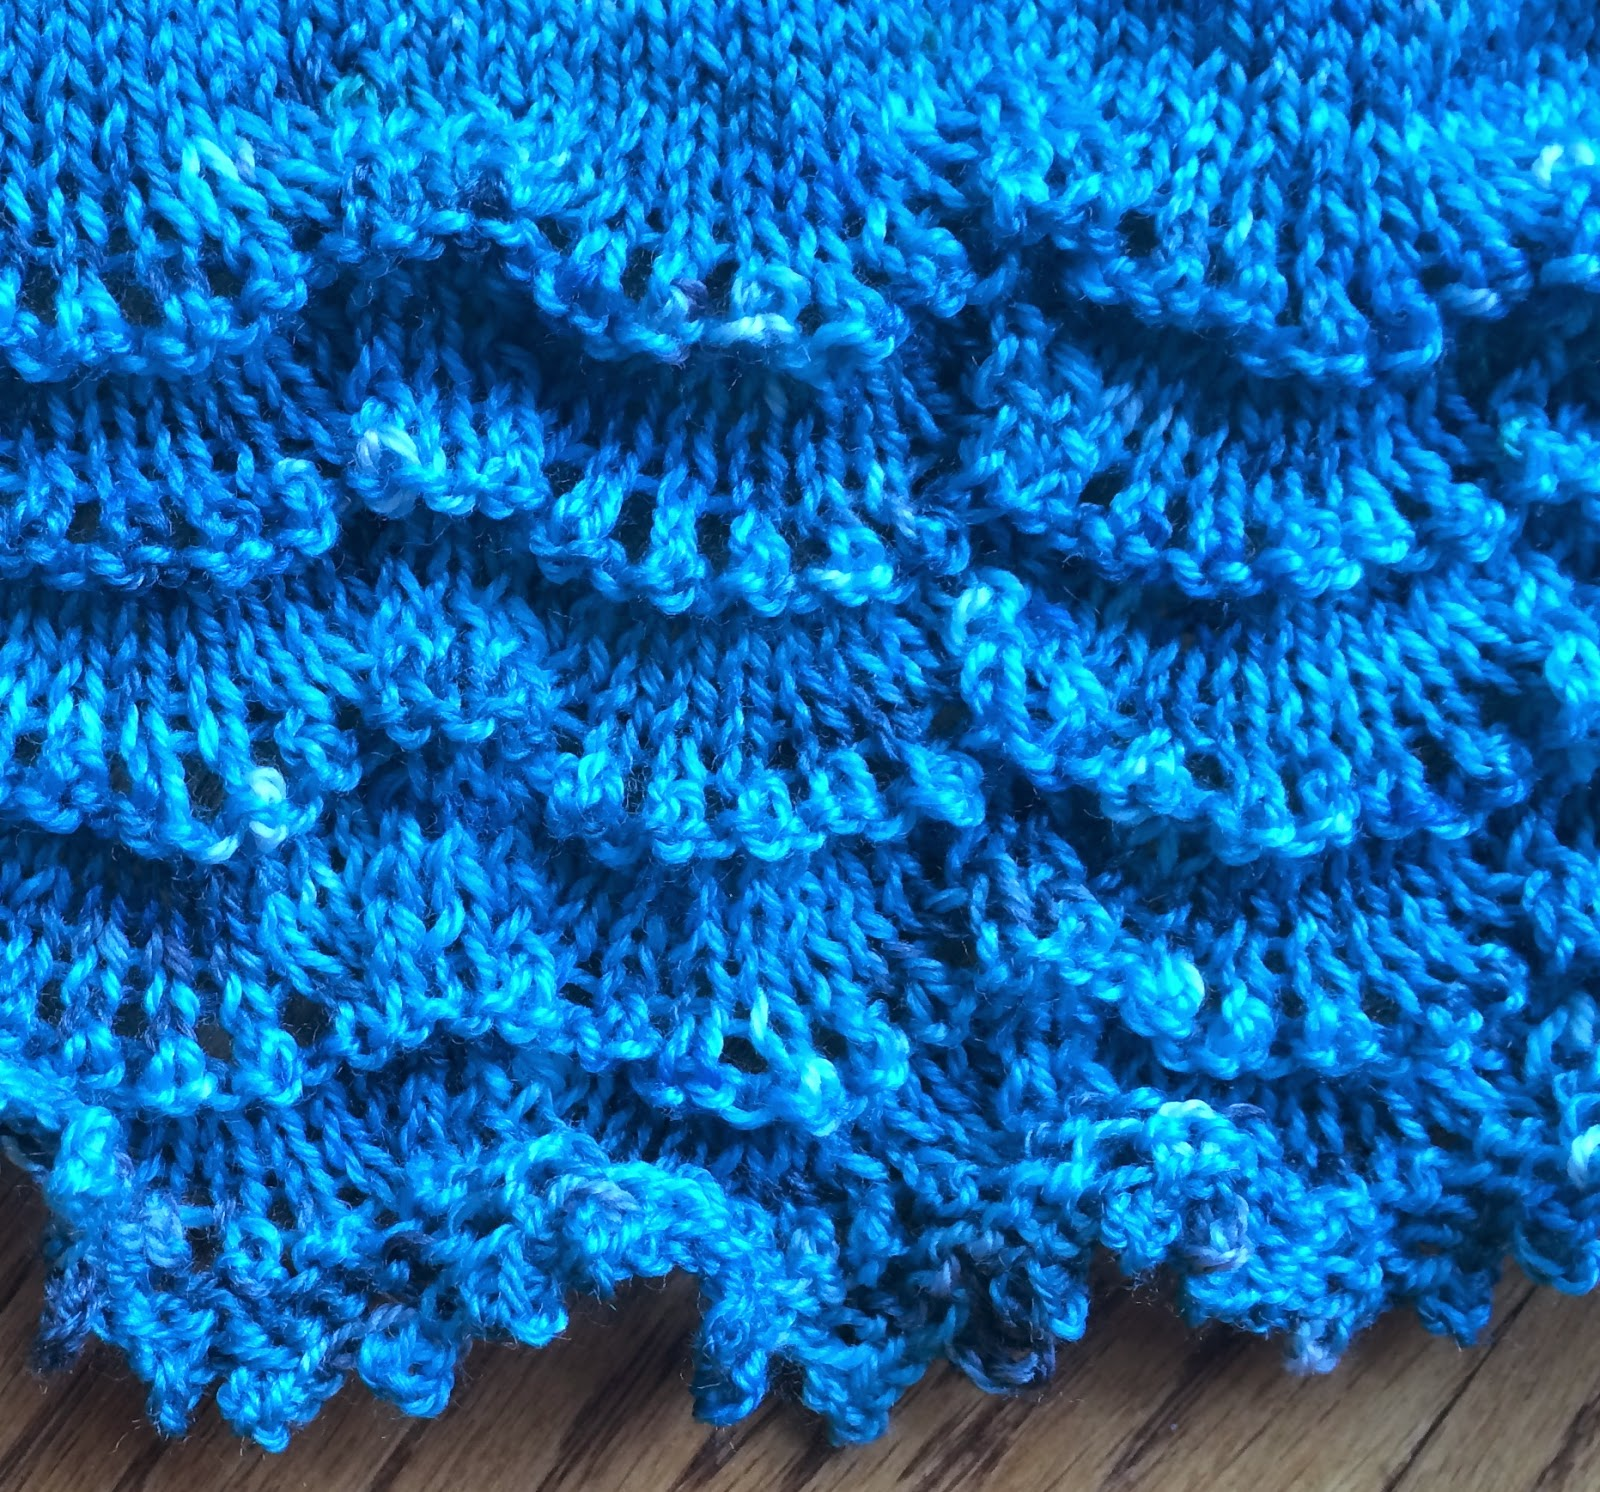 Holden Shawlette from The Artful Yarn - Done! 12